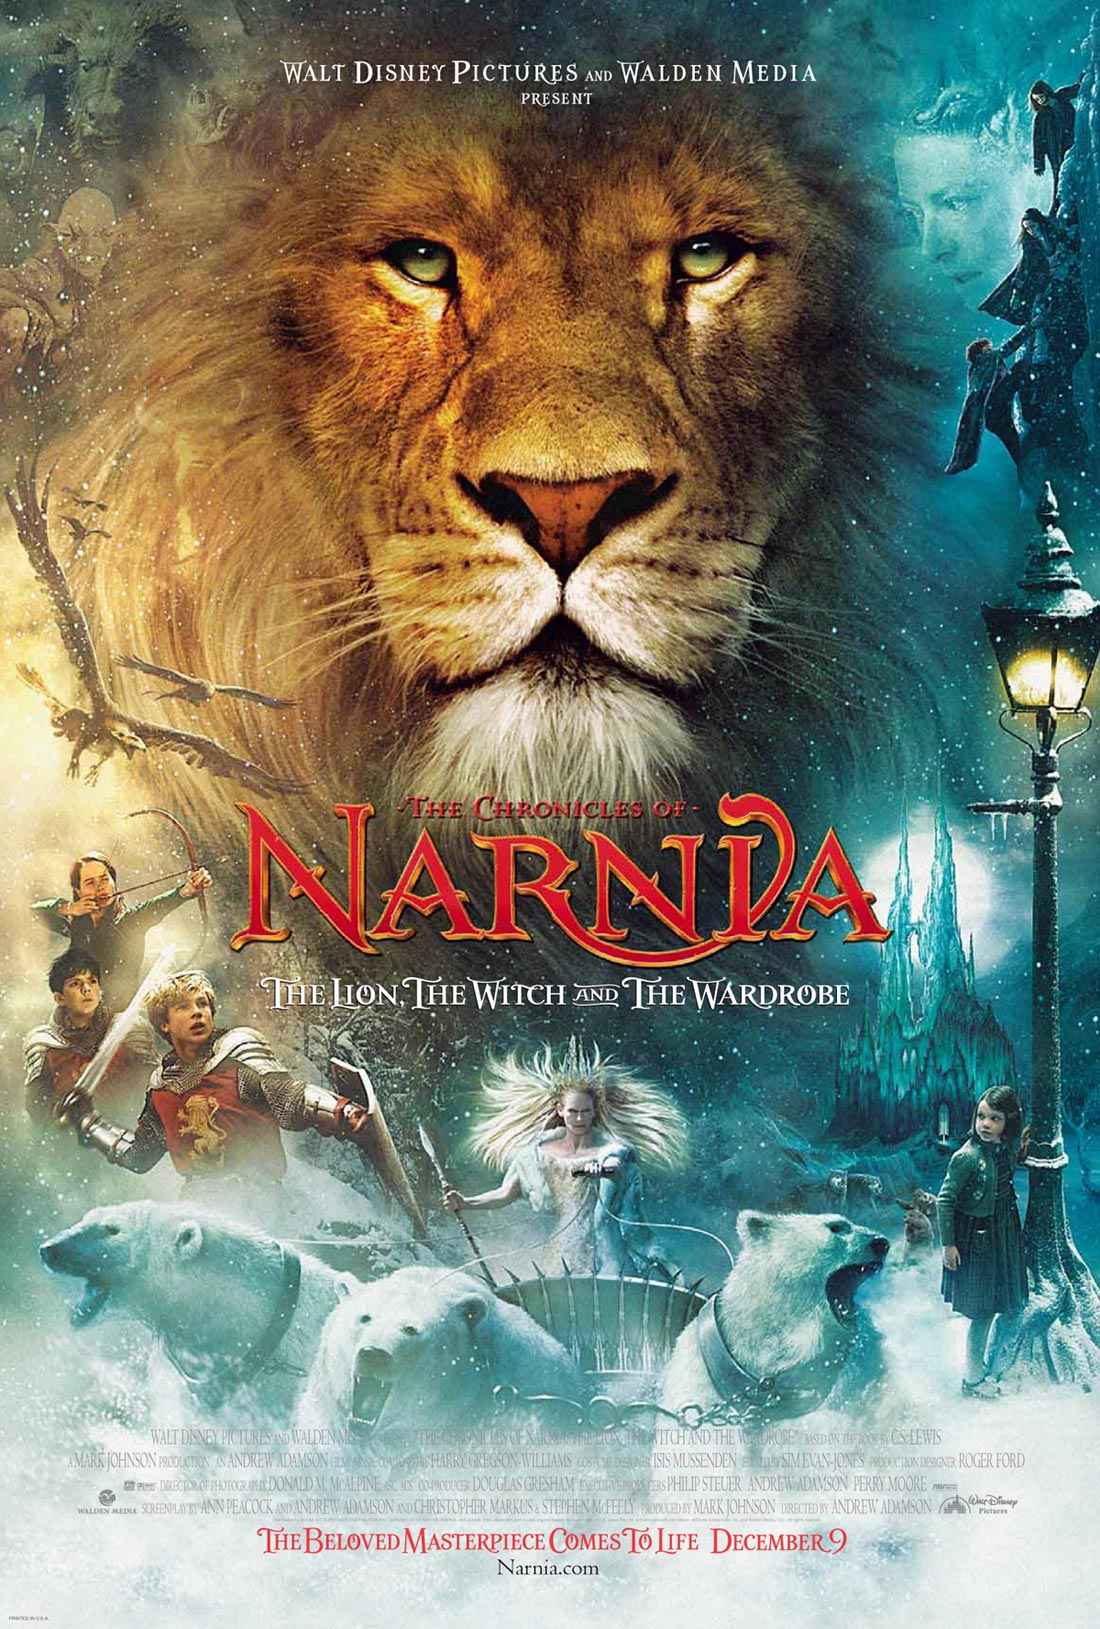 The Chronicles of Narnia Narnia_Poster